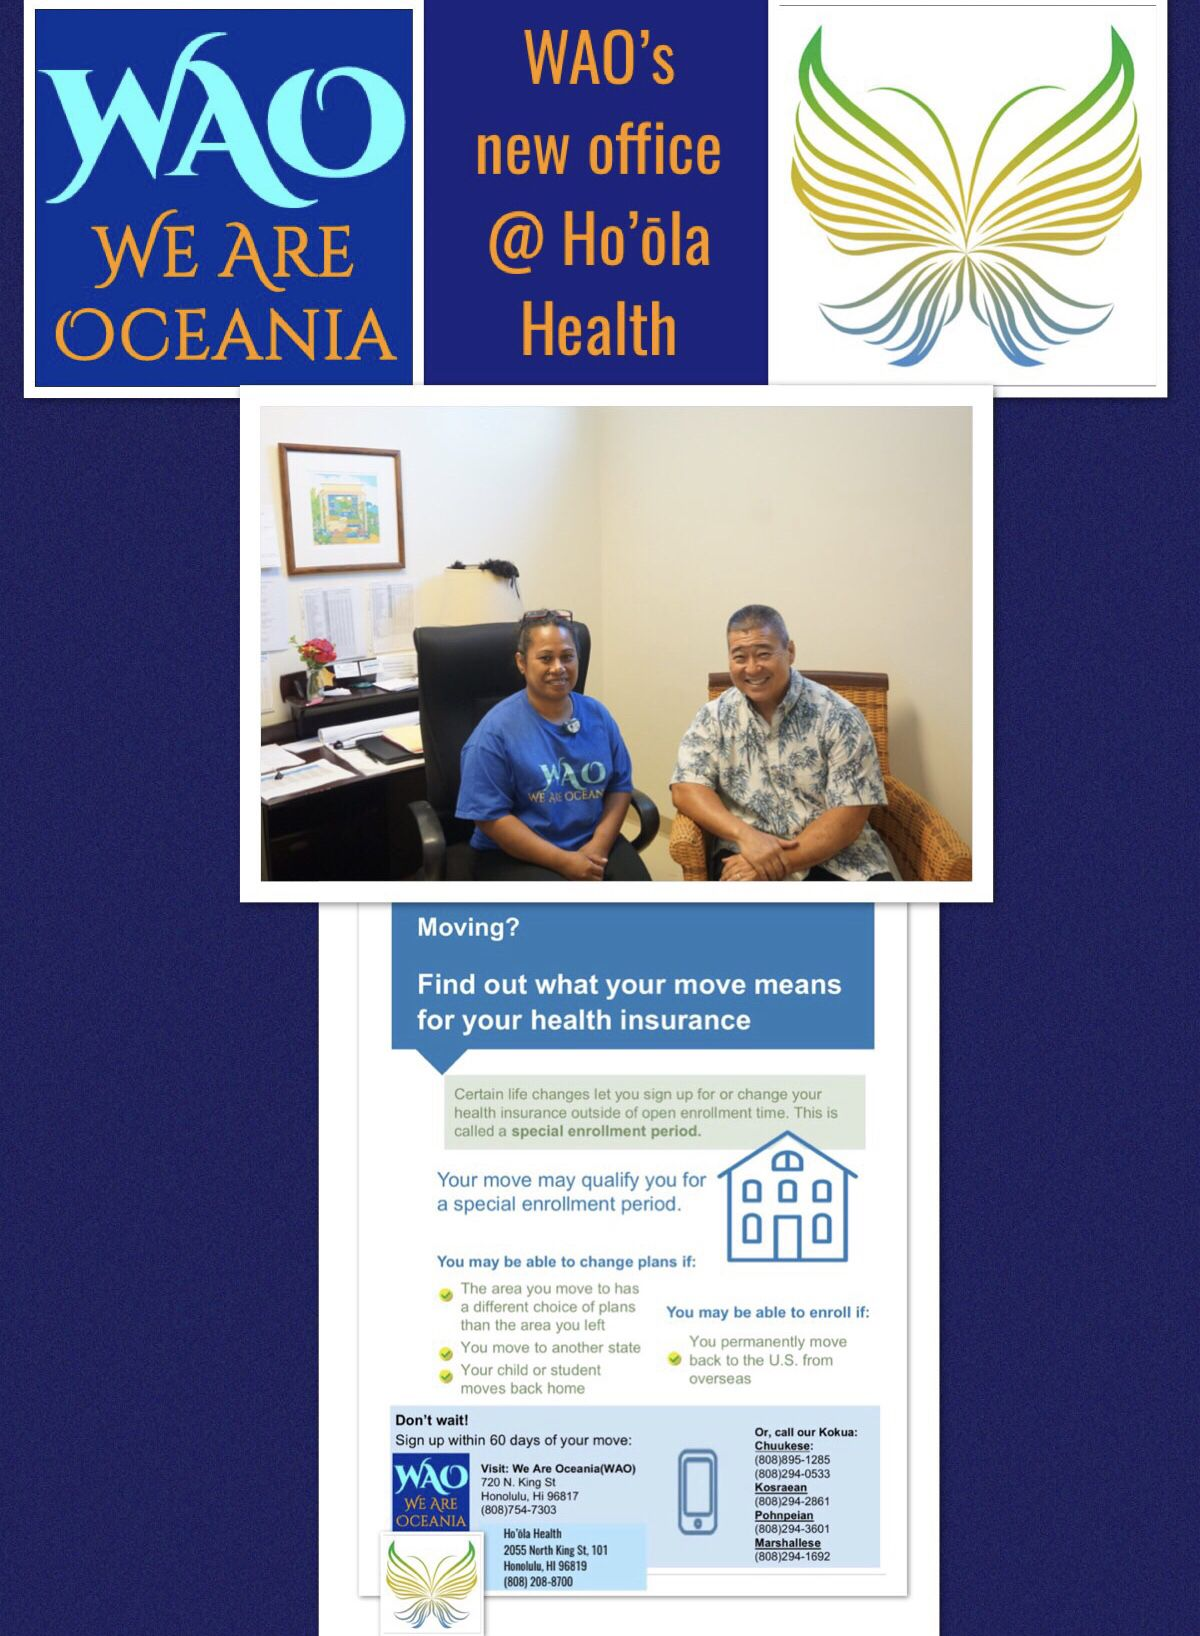 Moving In Today Wao We Are Oceania Has A New Office At Ho ōla Health Urgent Care Located At North King Street